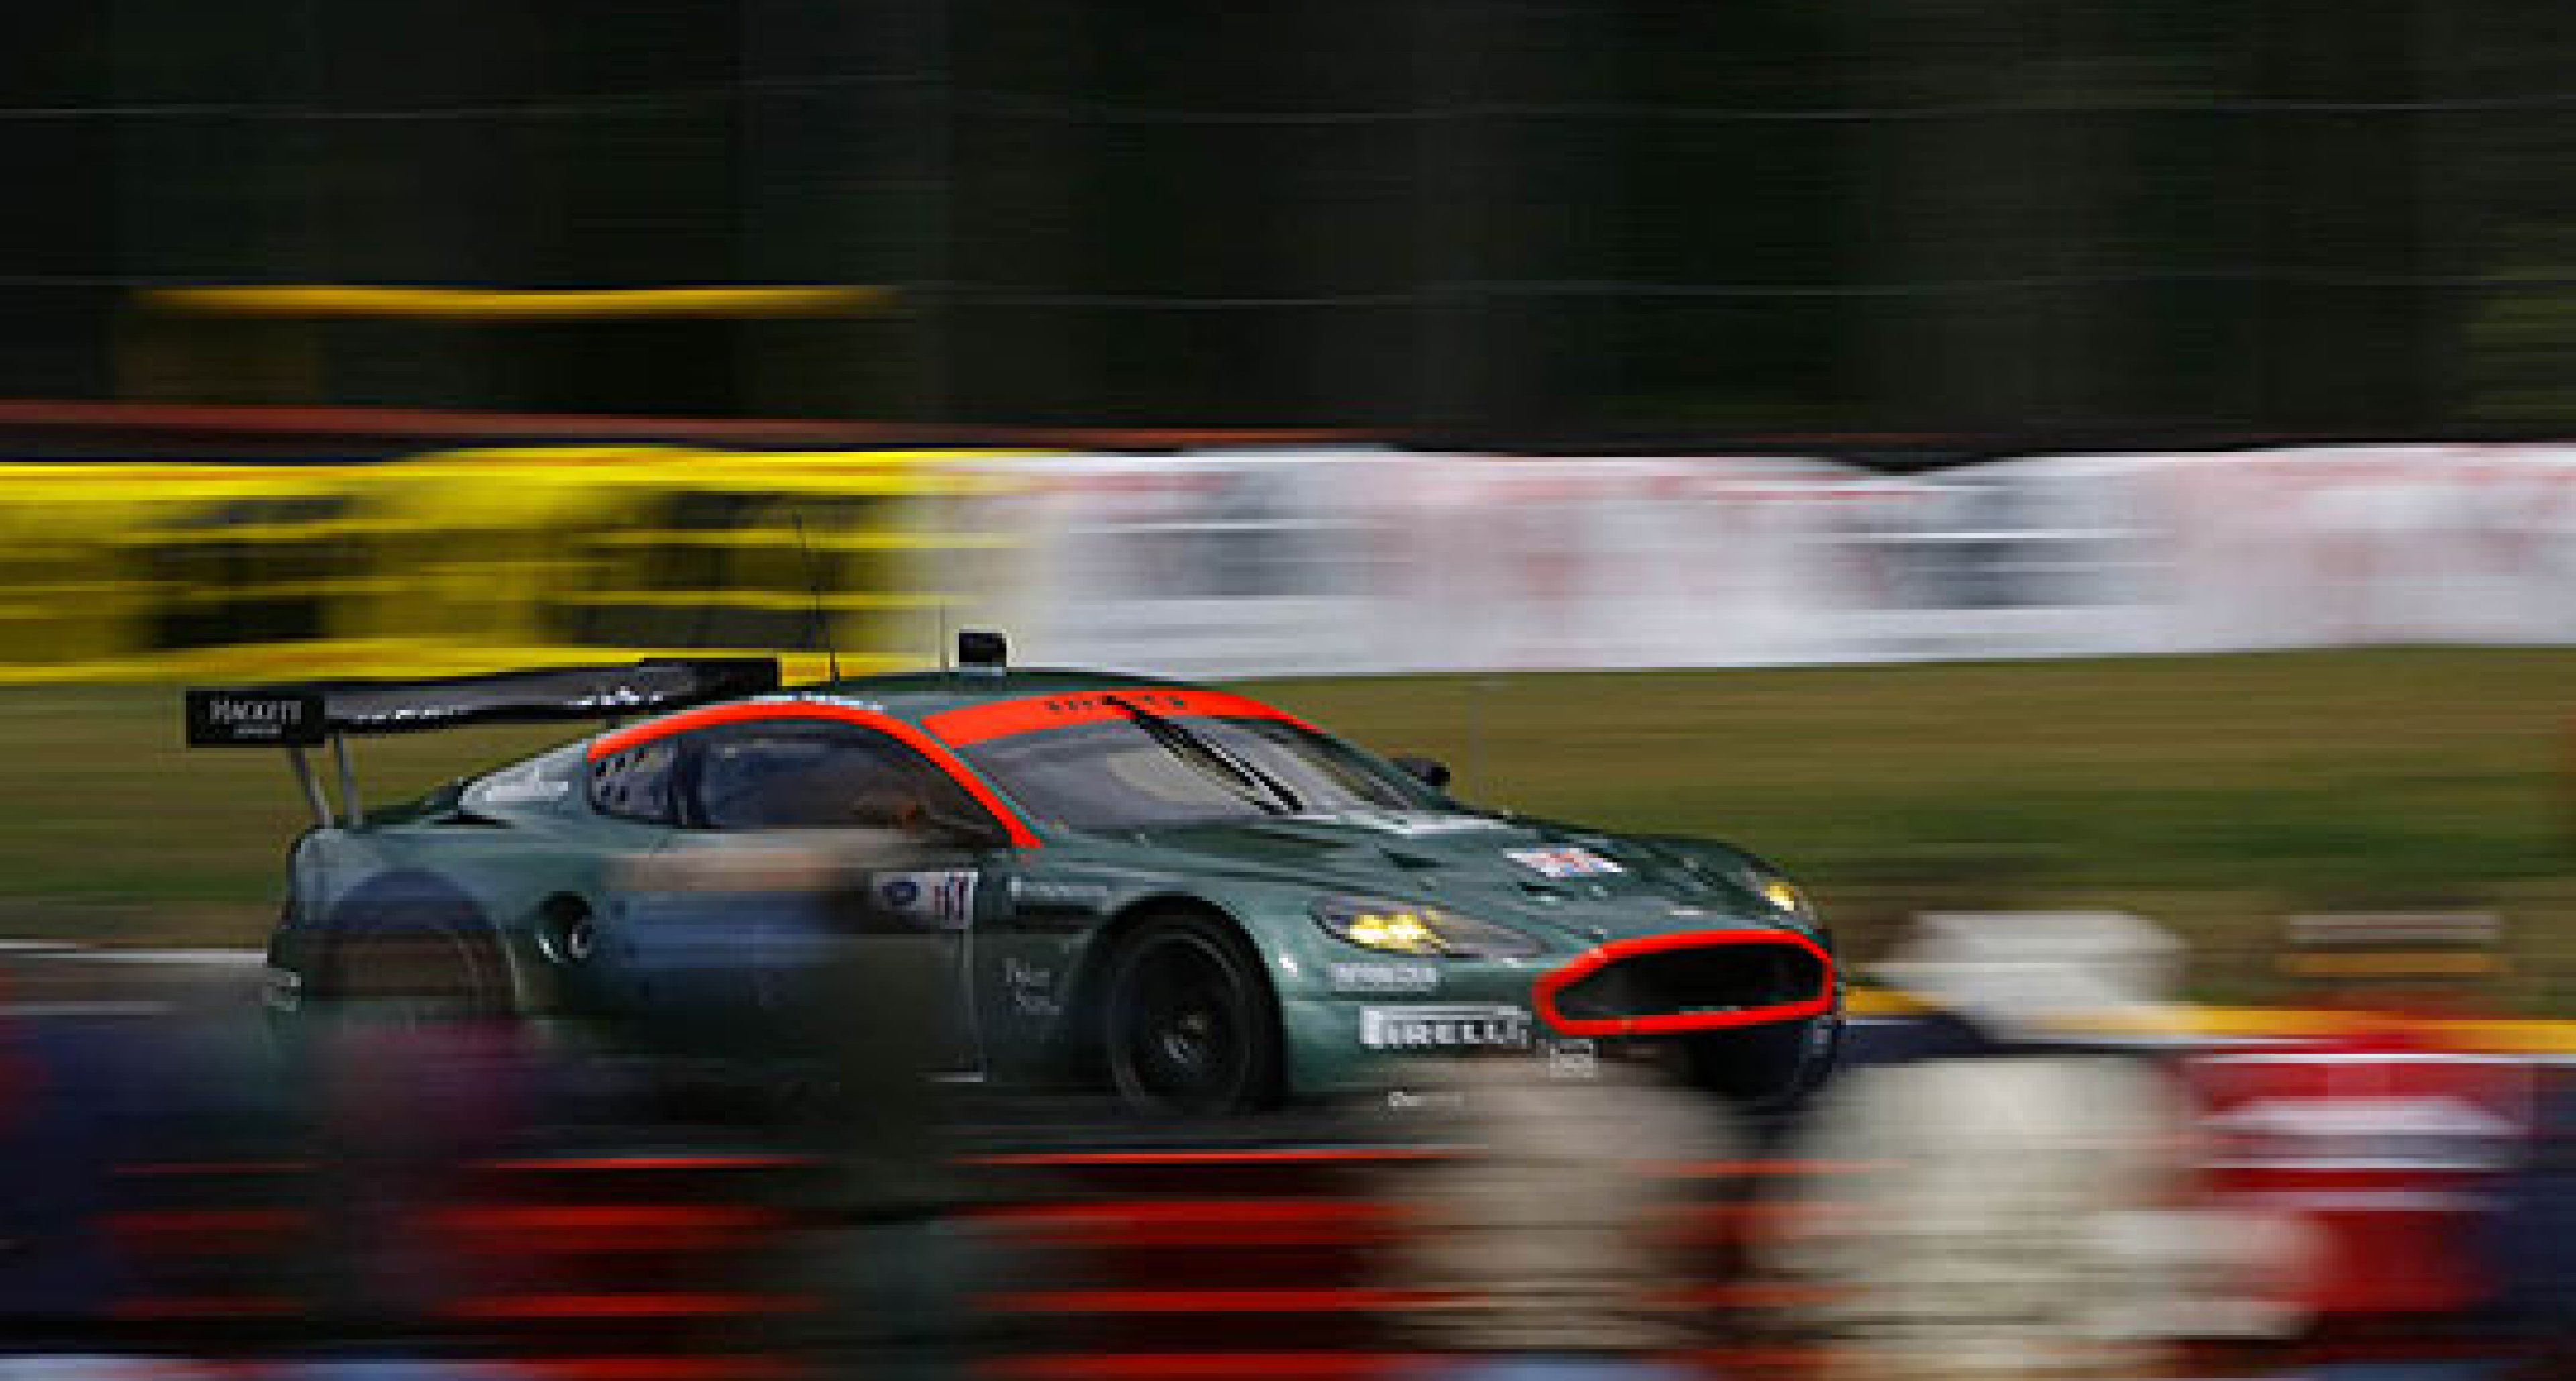 Aston Martin Racing and the American Le Mans Series